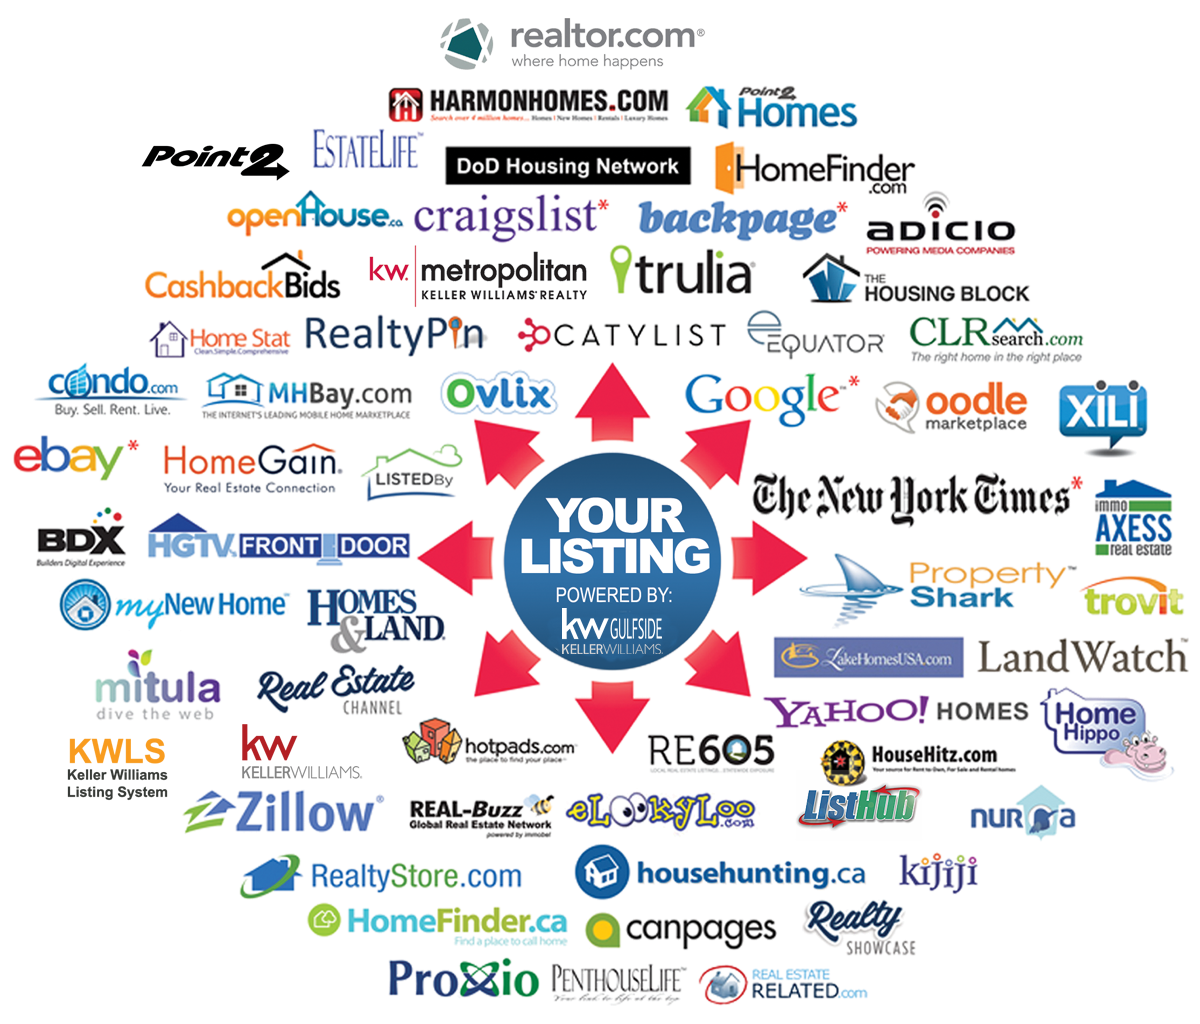 The more websites you can get your listing to, the wider the reach to find a buyer.